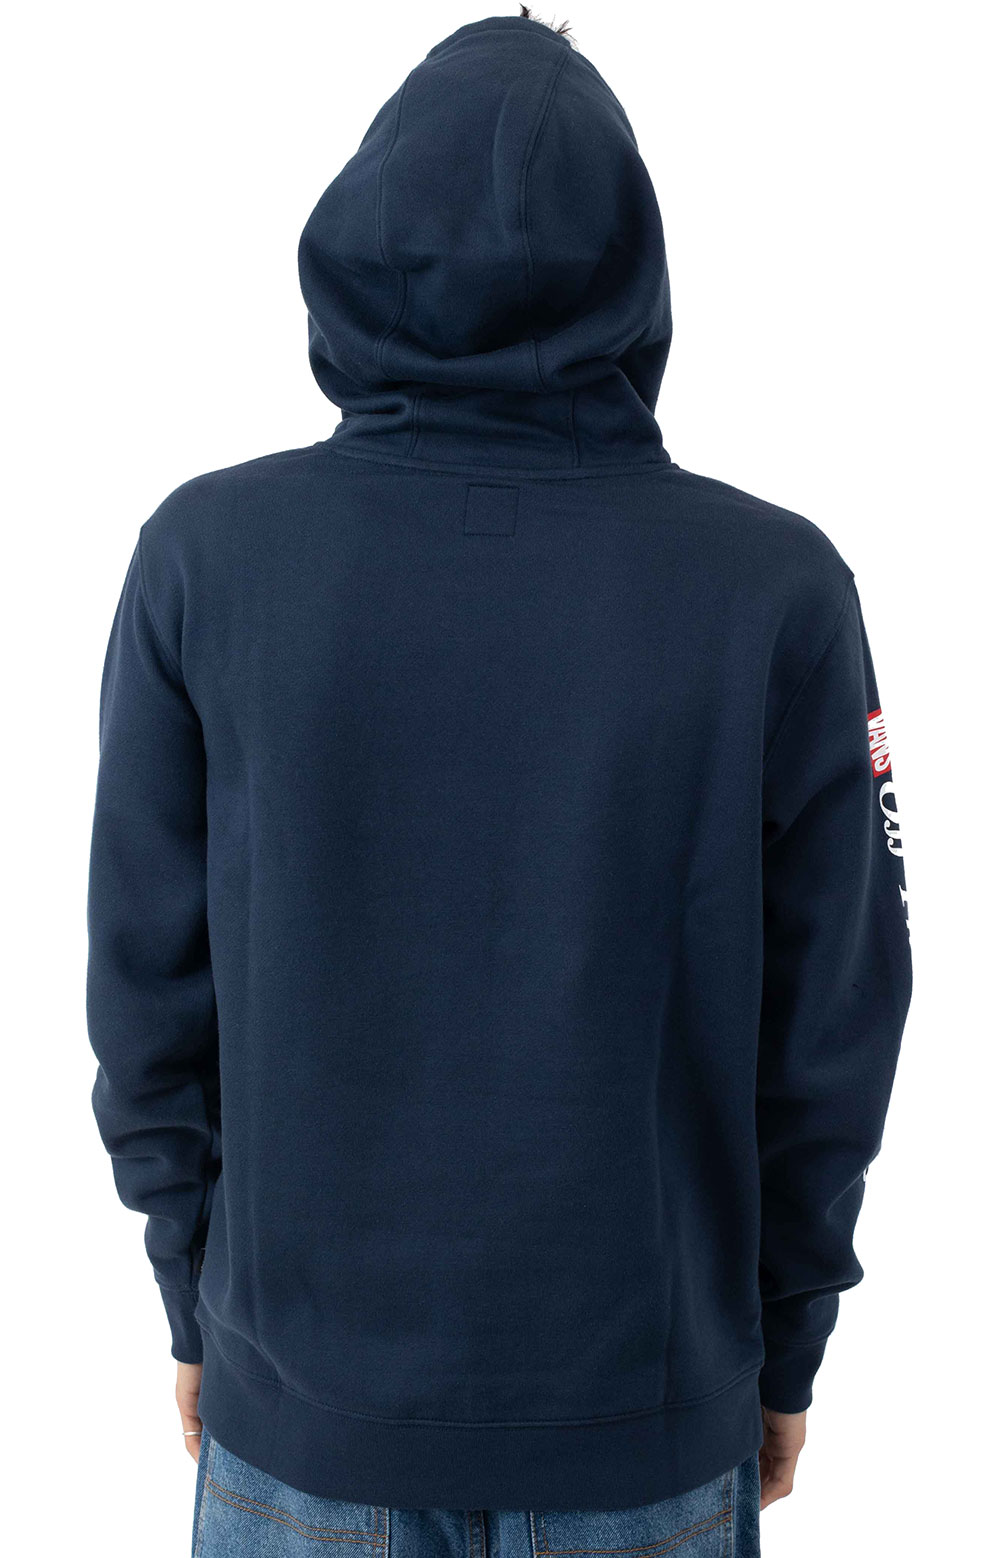 Frequency Pullover Hoodie - Dress Blue  3